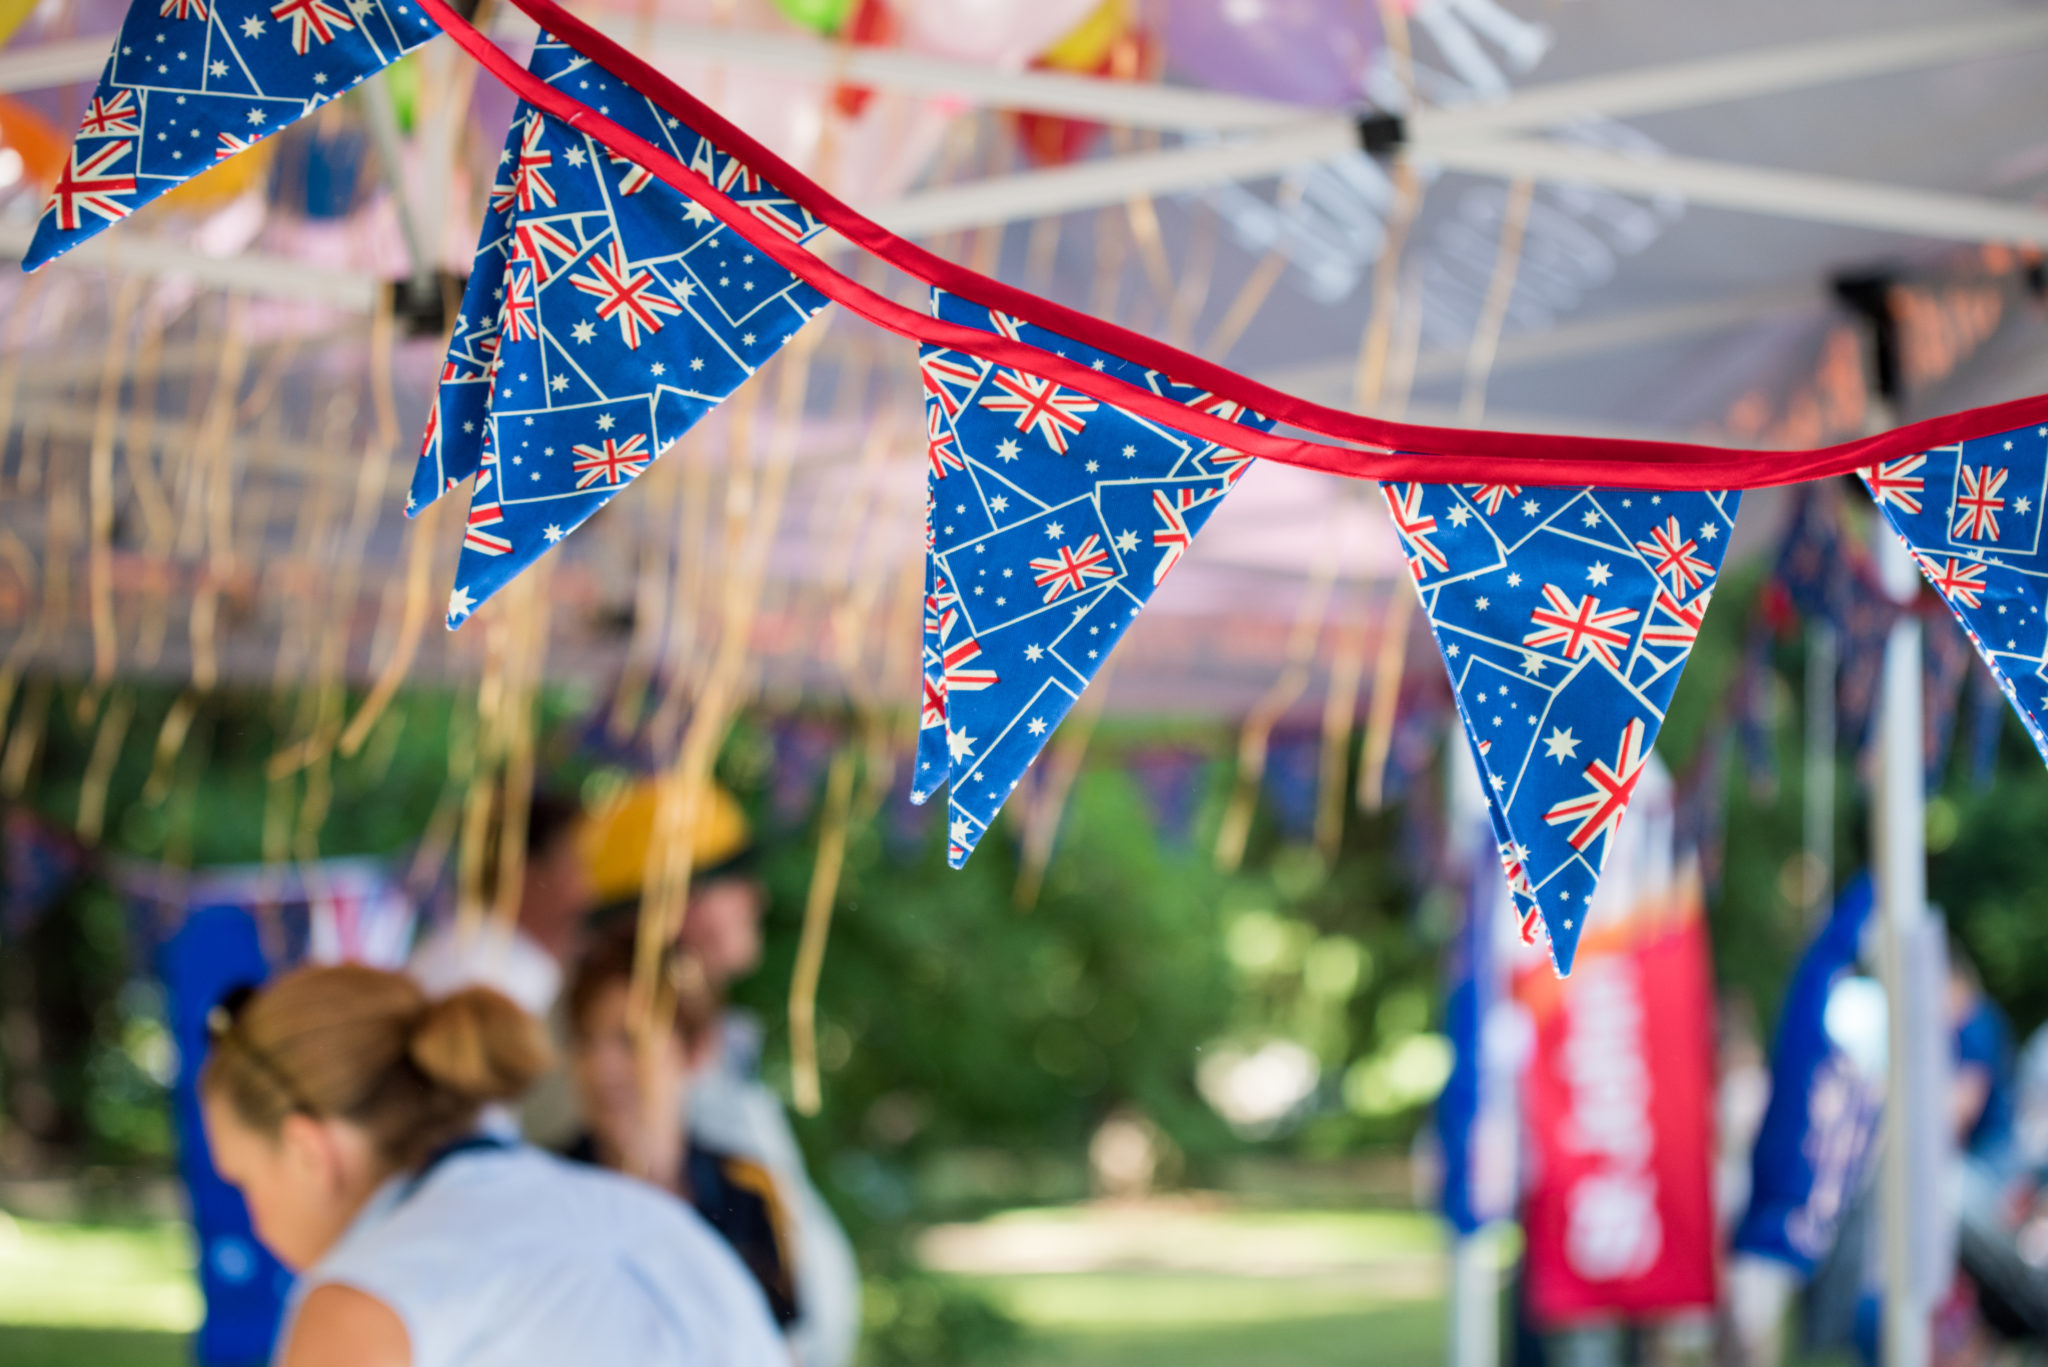 Come to Cook Park from 8am this Australia Day